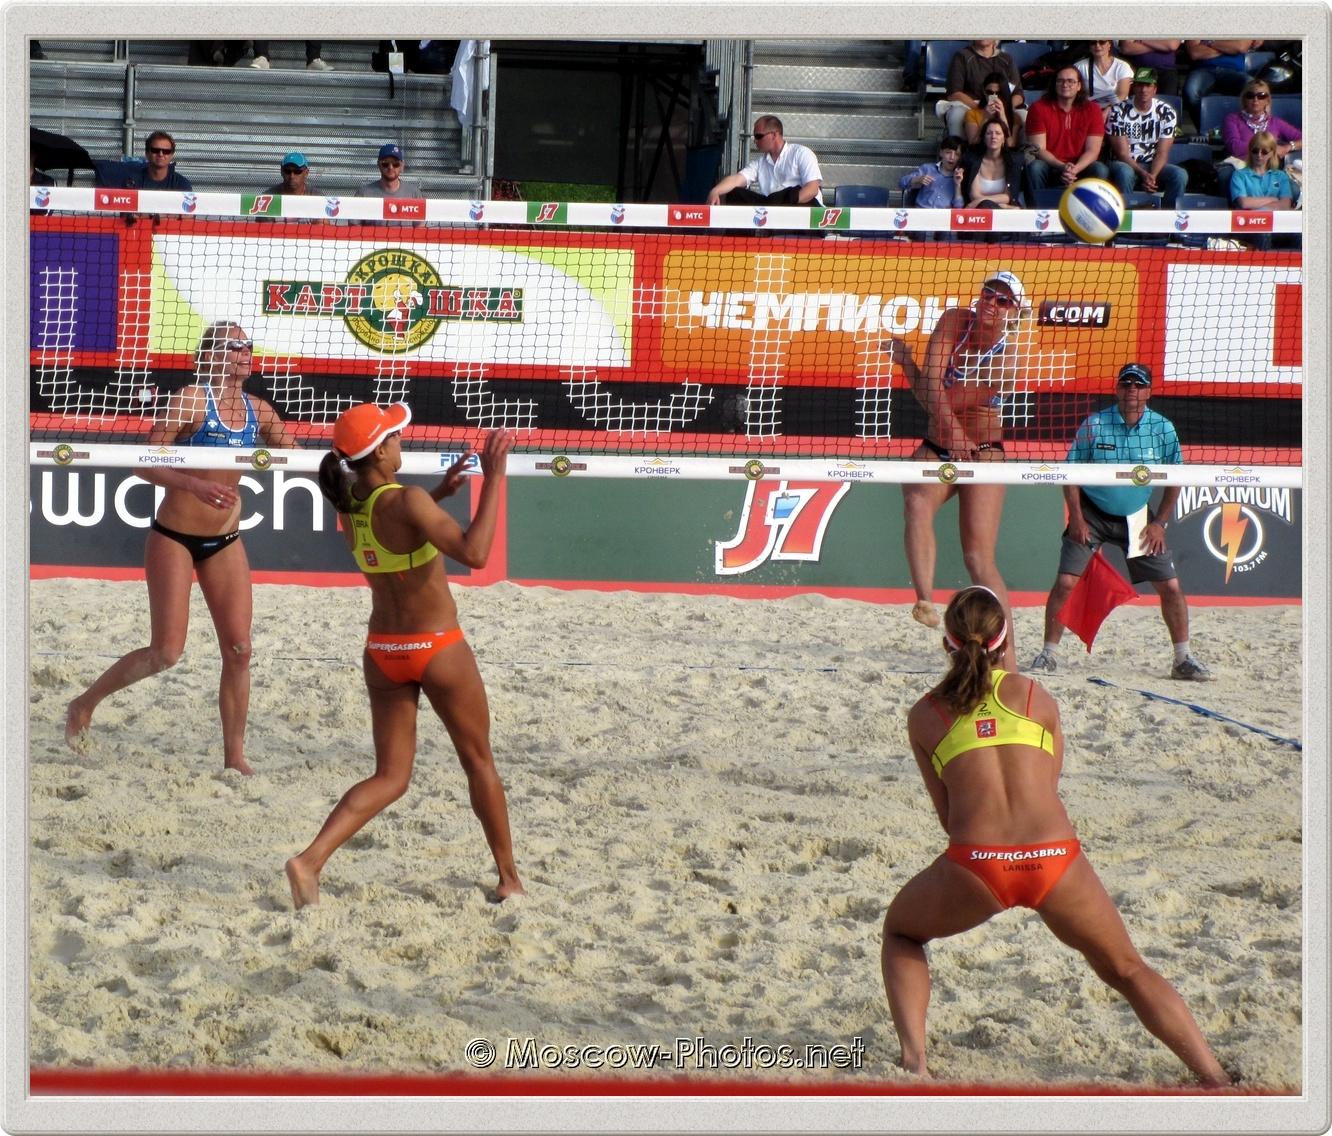 A powerful attack of dutch beach volley girl Marleen Van Iersel